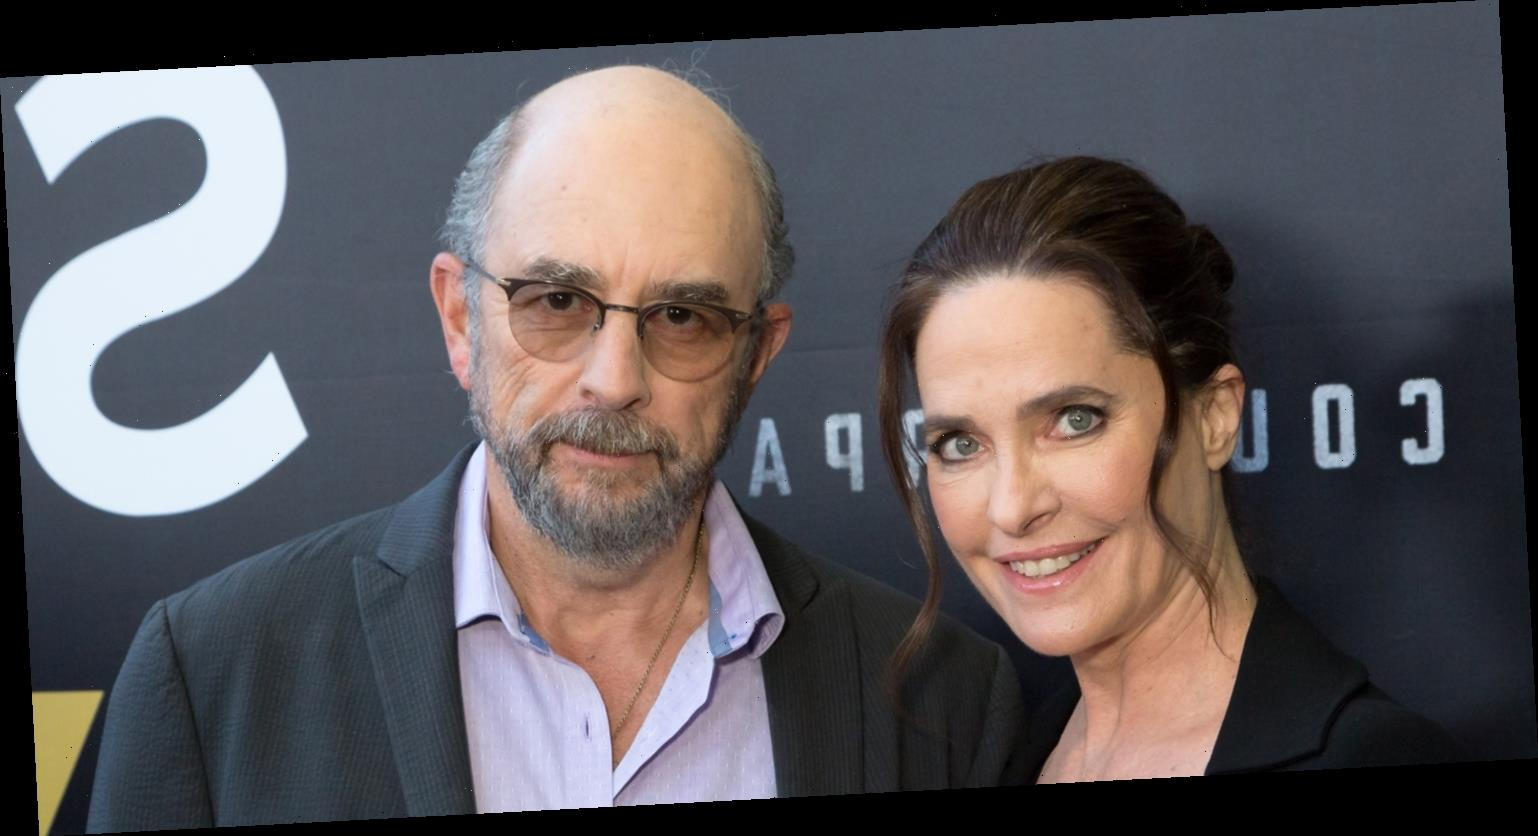 'The Good Doctor' Actor Richard Schiff & Wife Sheila Kelley Test Positive for Coronavirus